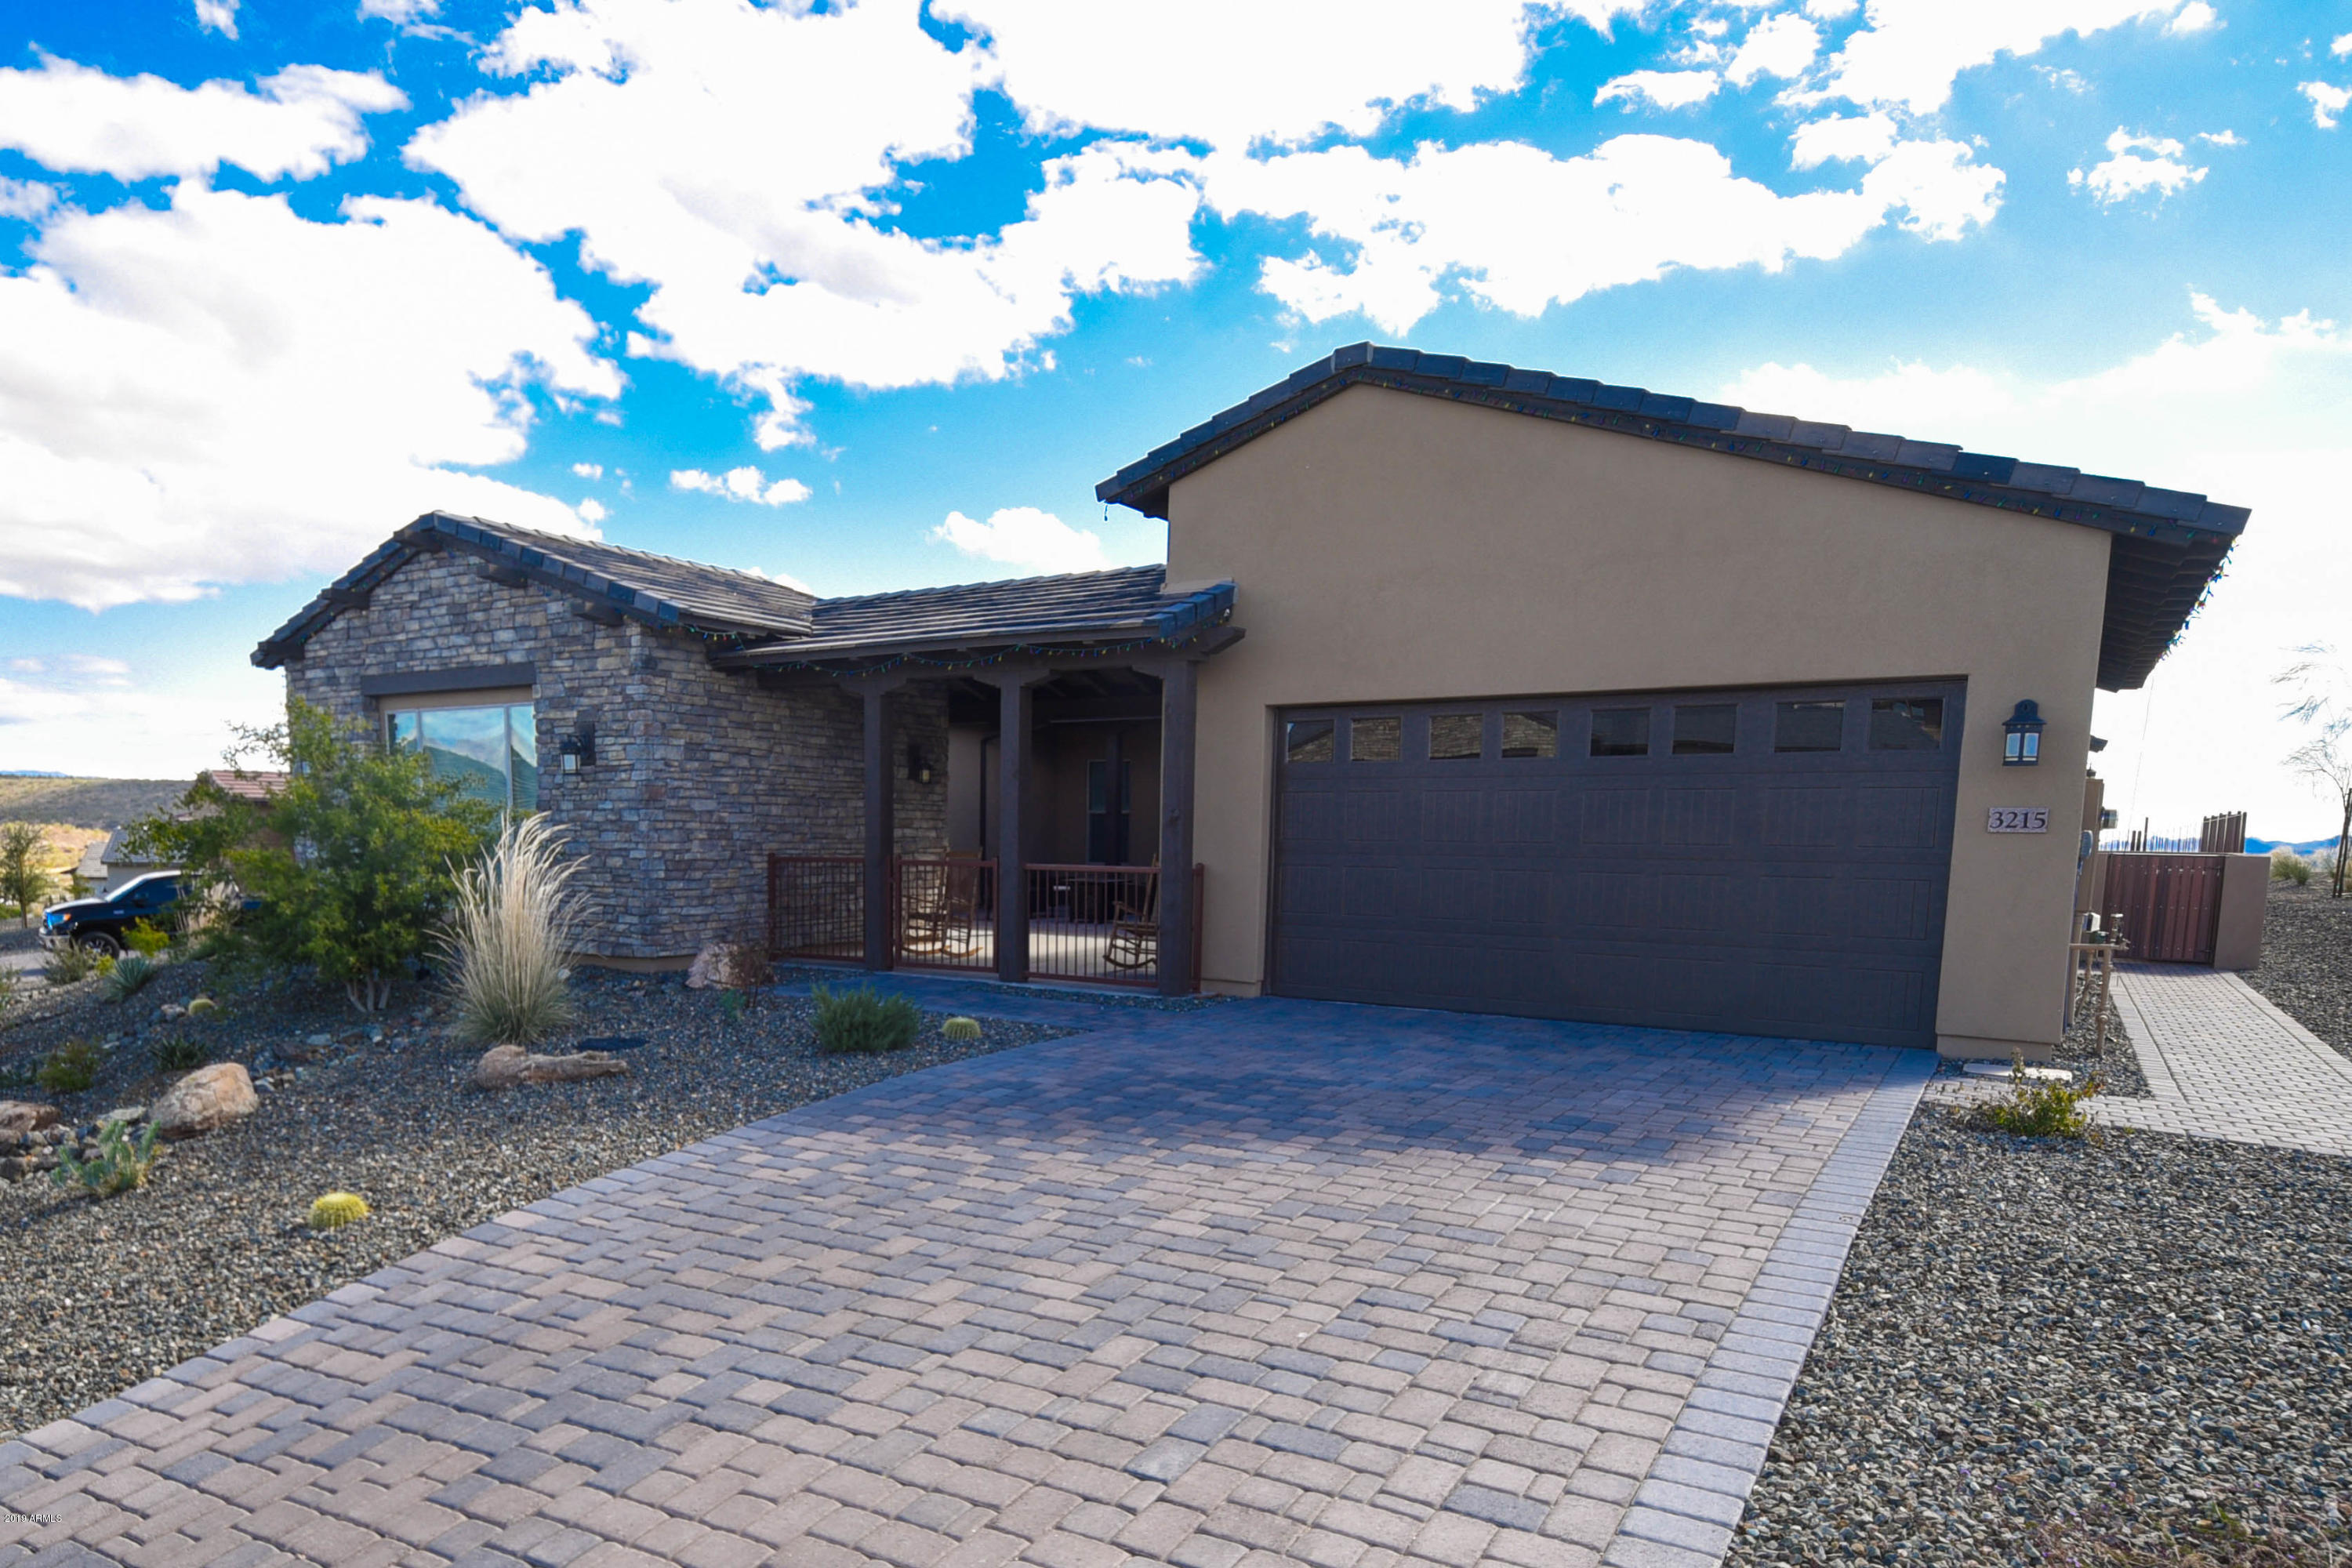 Photo of 3215 KNIGHT Way, Wickenburg, AZ 85390